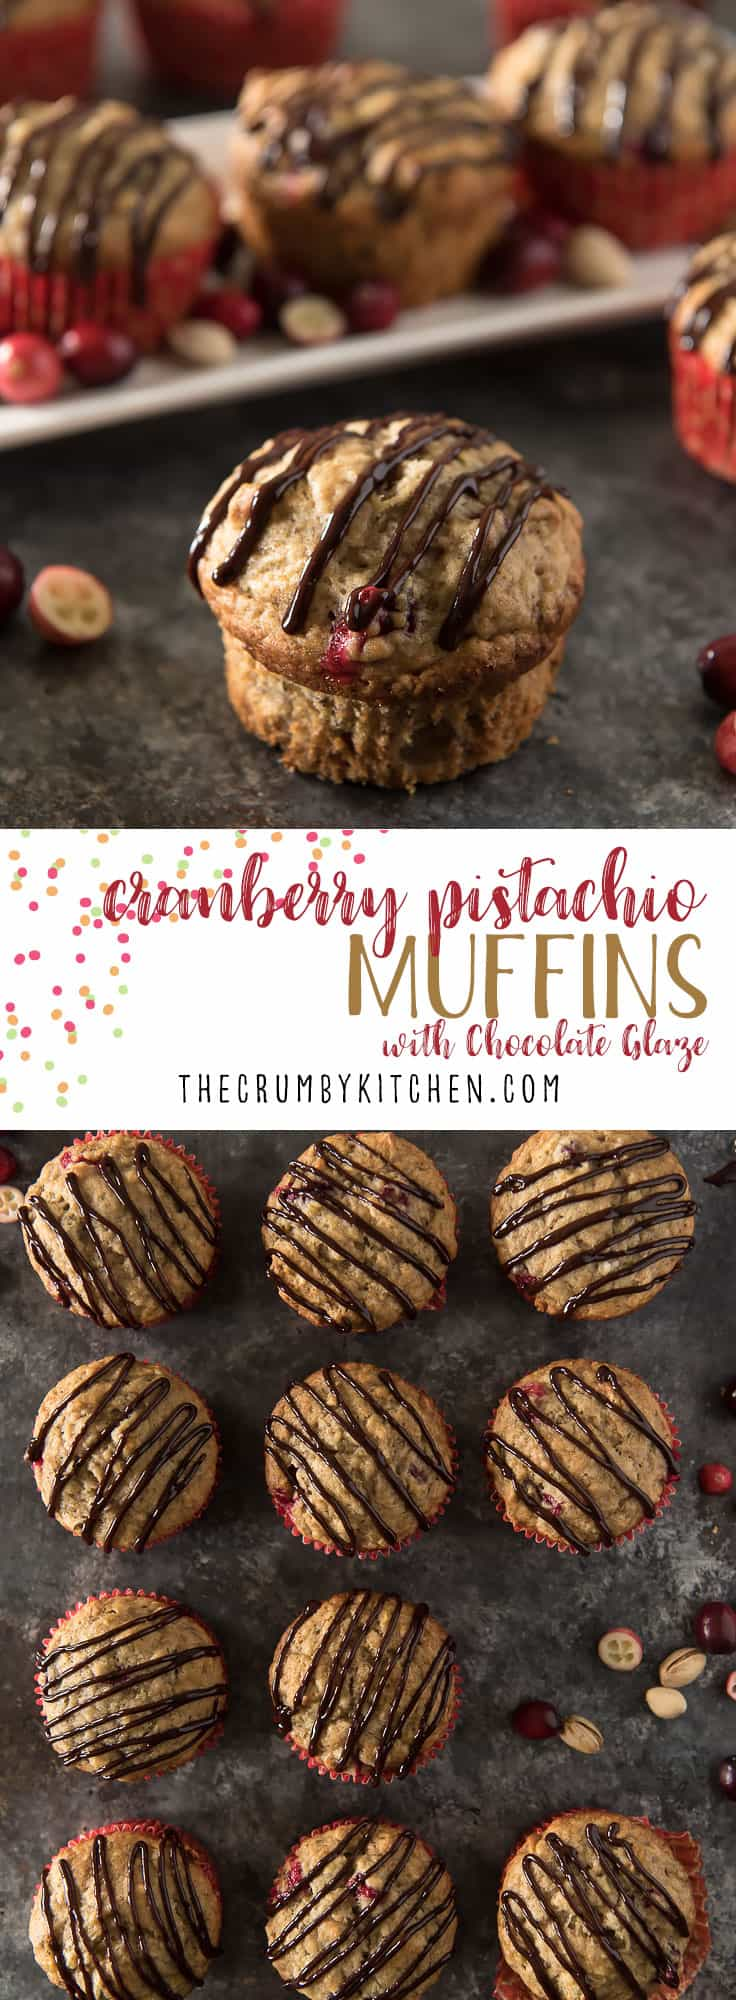 Talk about a flavor & texture overload! Be the hero your family needs and serve these Banana Cranberry Pistachio Muffins with Chocolate Glaze for every holiday breakfast!